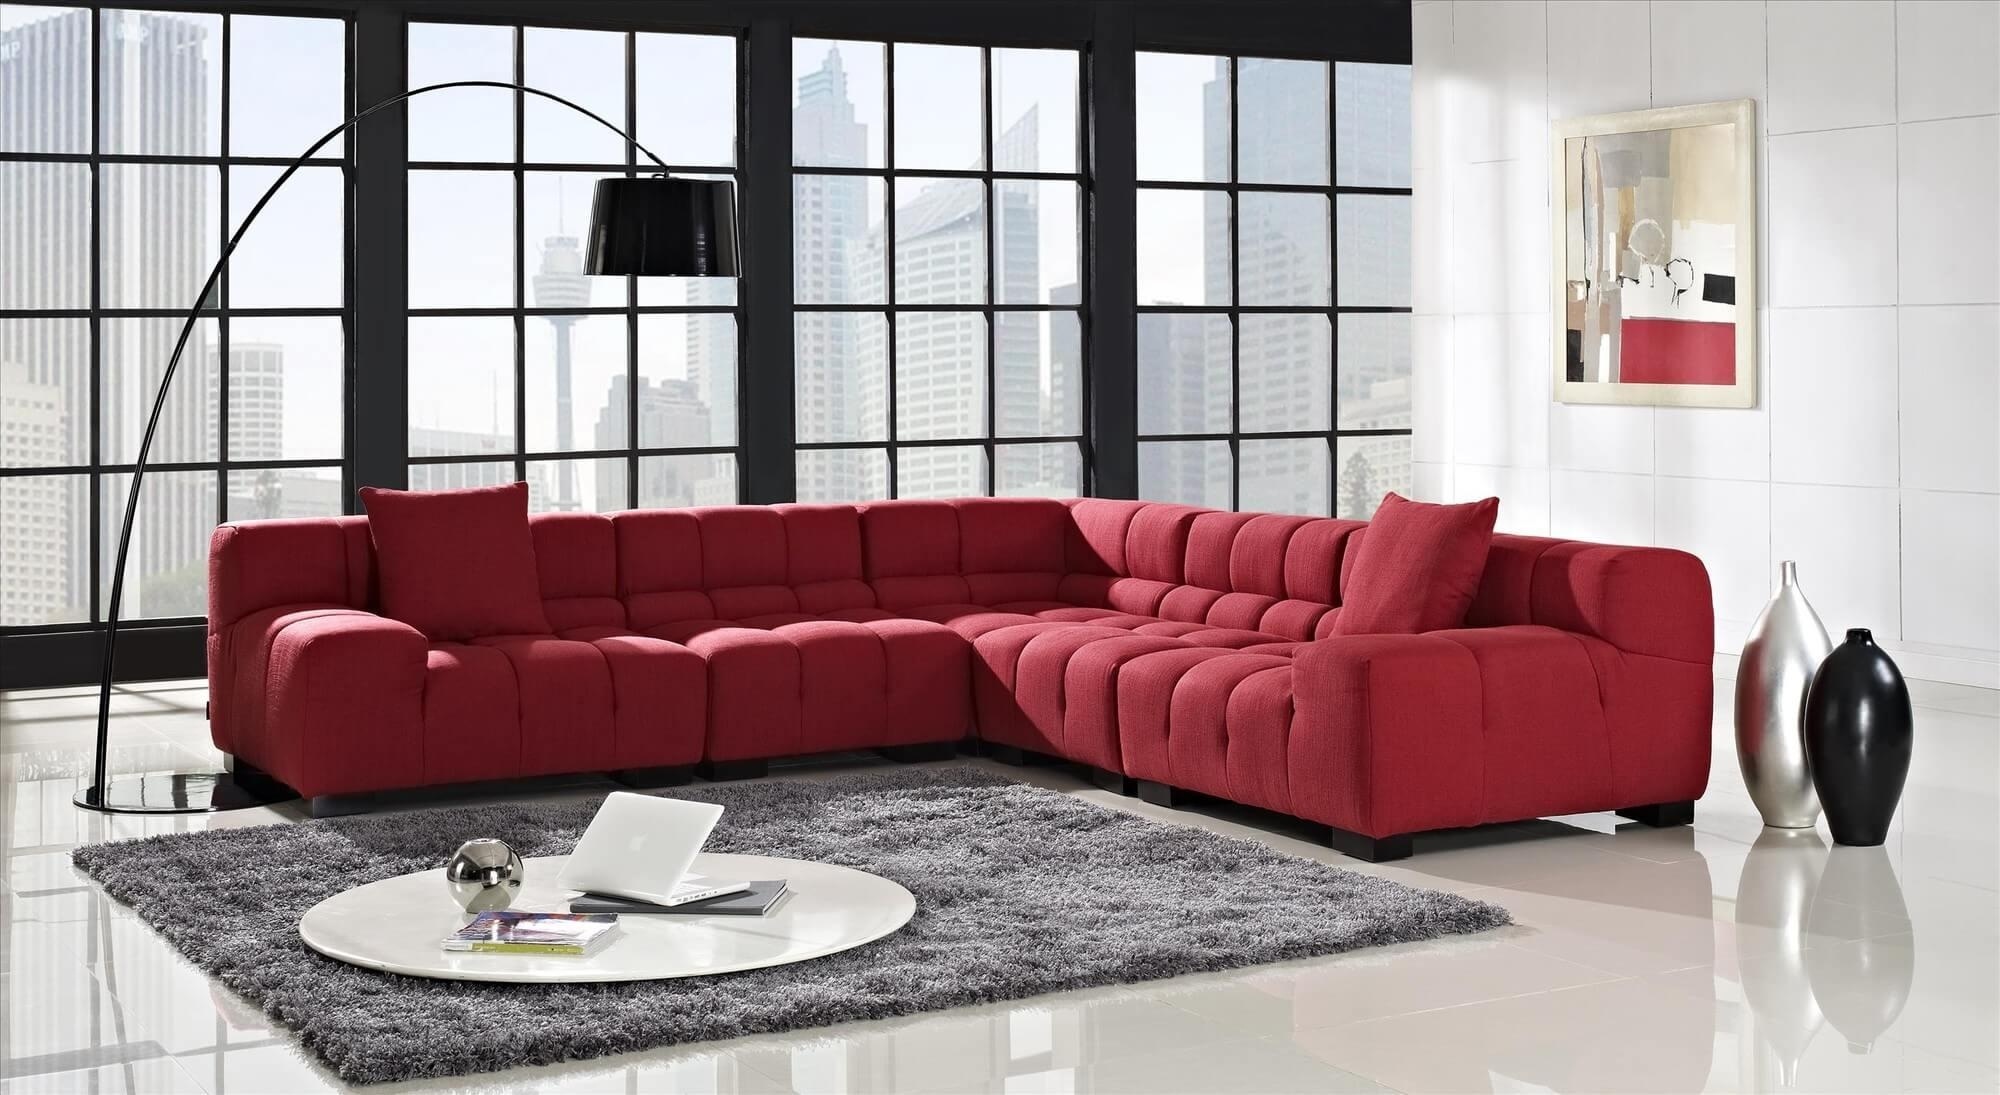 Sofas Center : Tosh Furniture Modern Black And Red Sofa Set Ikea Within Black And Red Sofa Sets (Image 20 of 20)